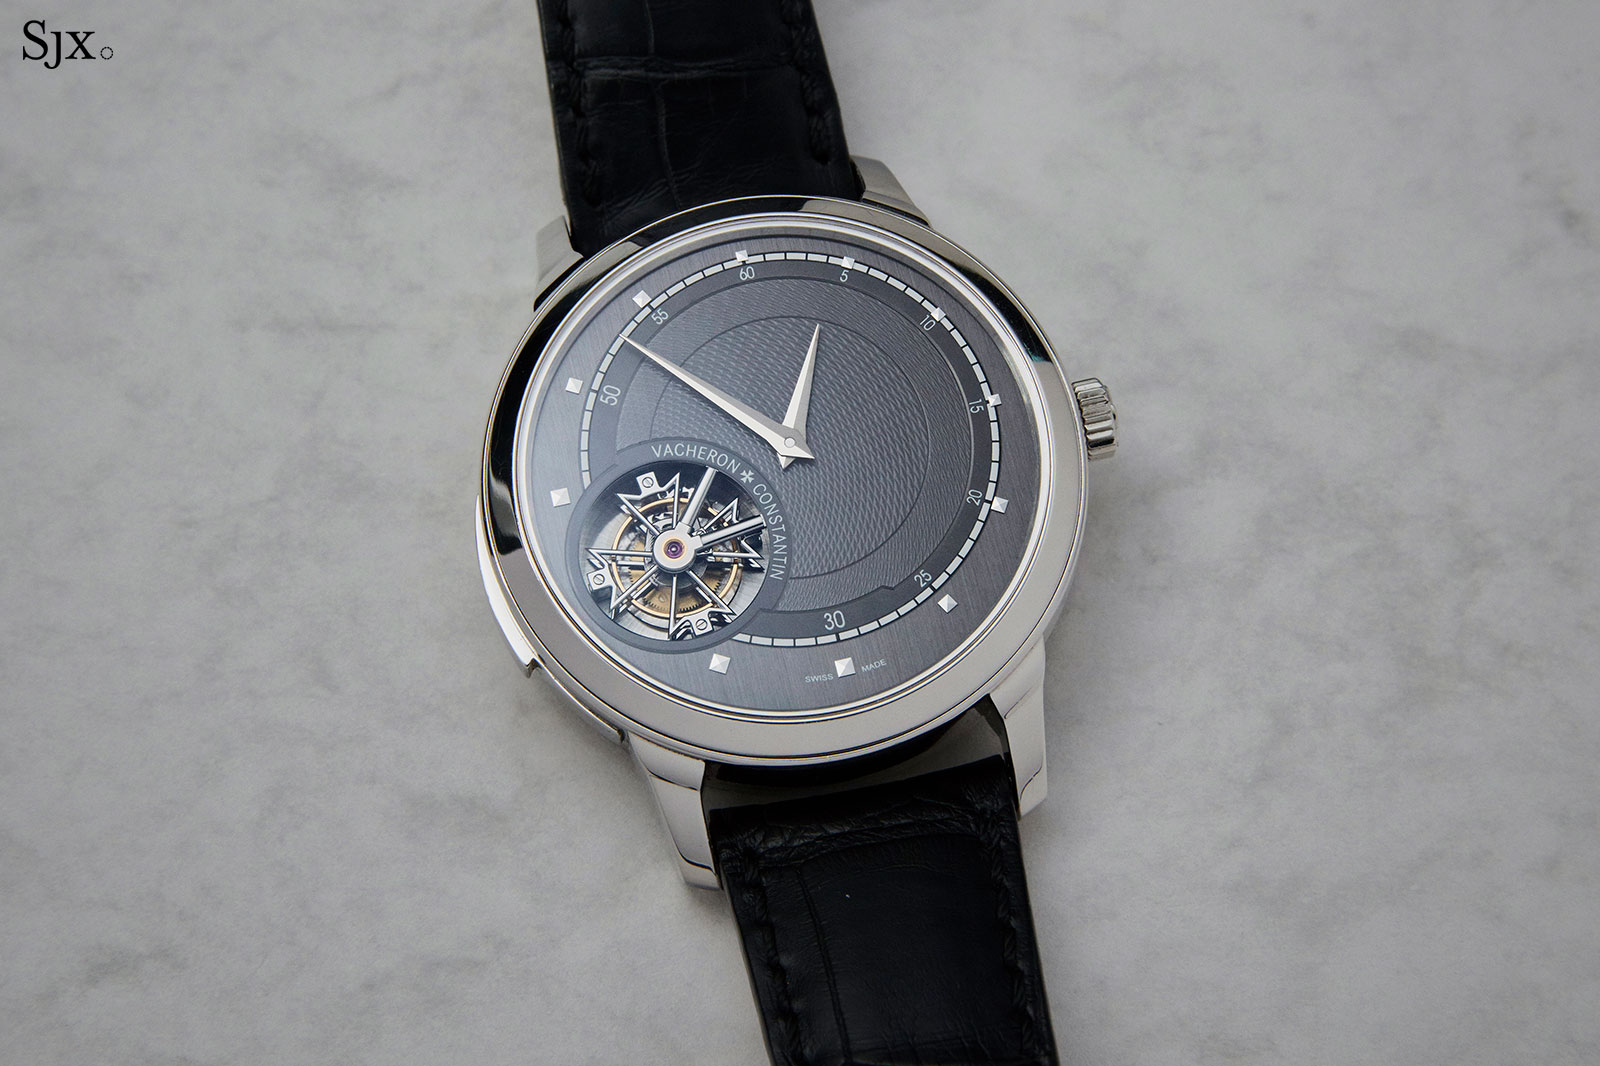 The Custom Vacheron Constantin That Might Be The Most Discreet Grand Complication Ever | SJX Watches